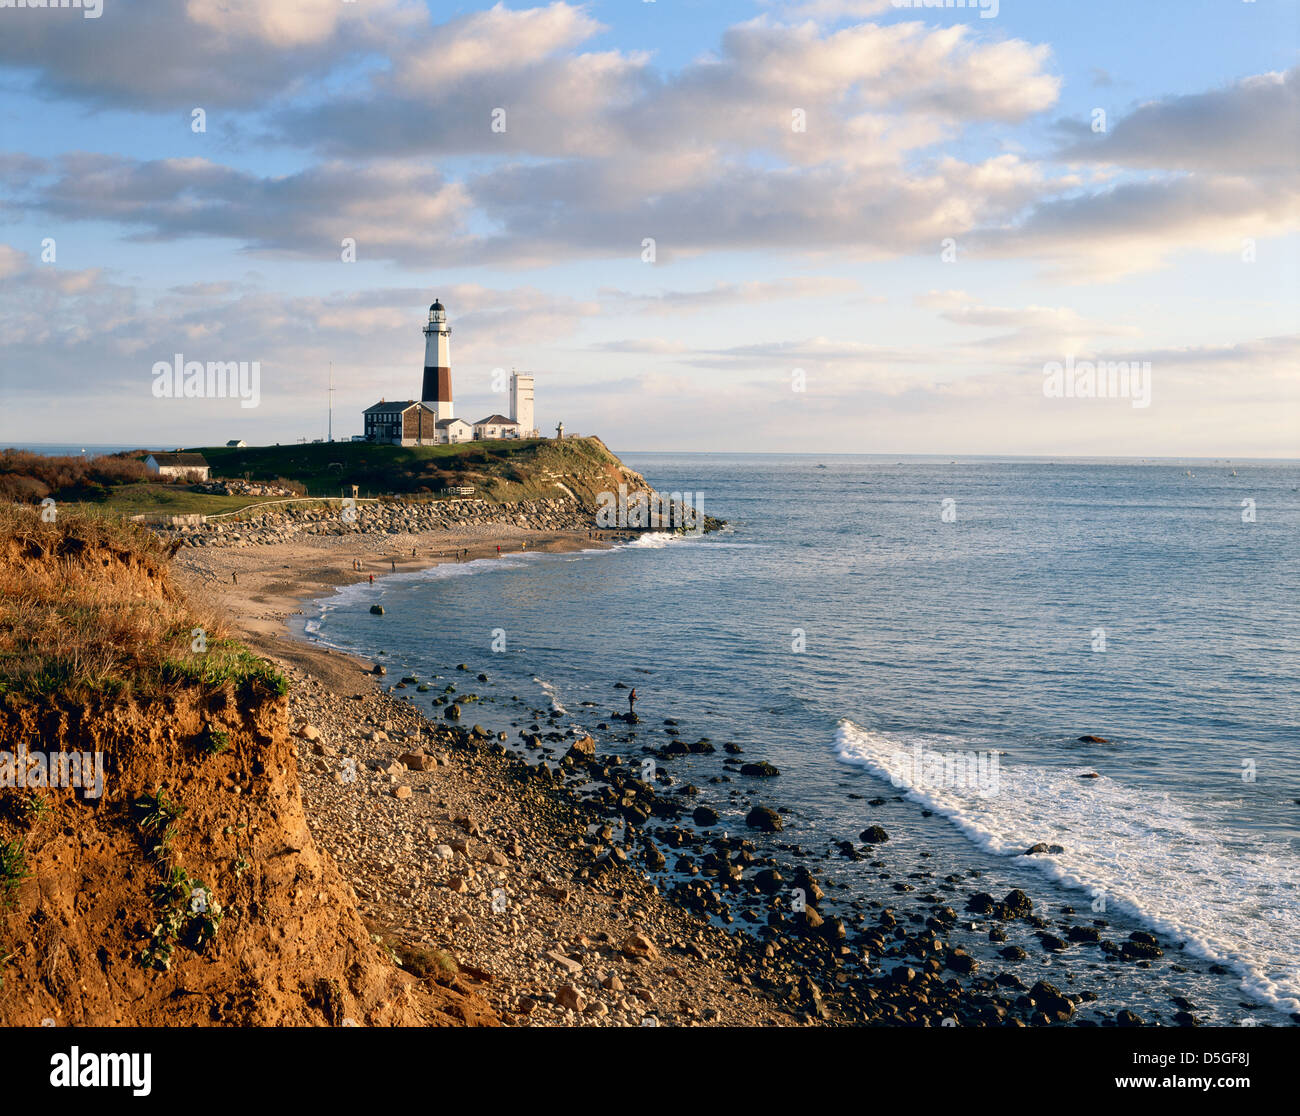 montauk lighthouse south fork long island new york usa stock photo 55067618 alamy. Black Bedroom Furniture Sets. Home Design Ideas